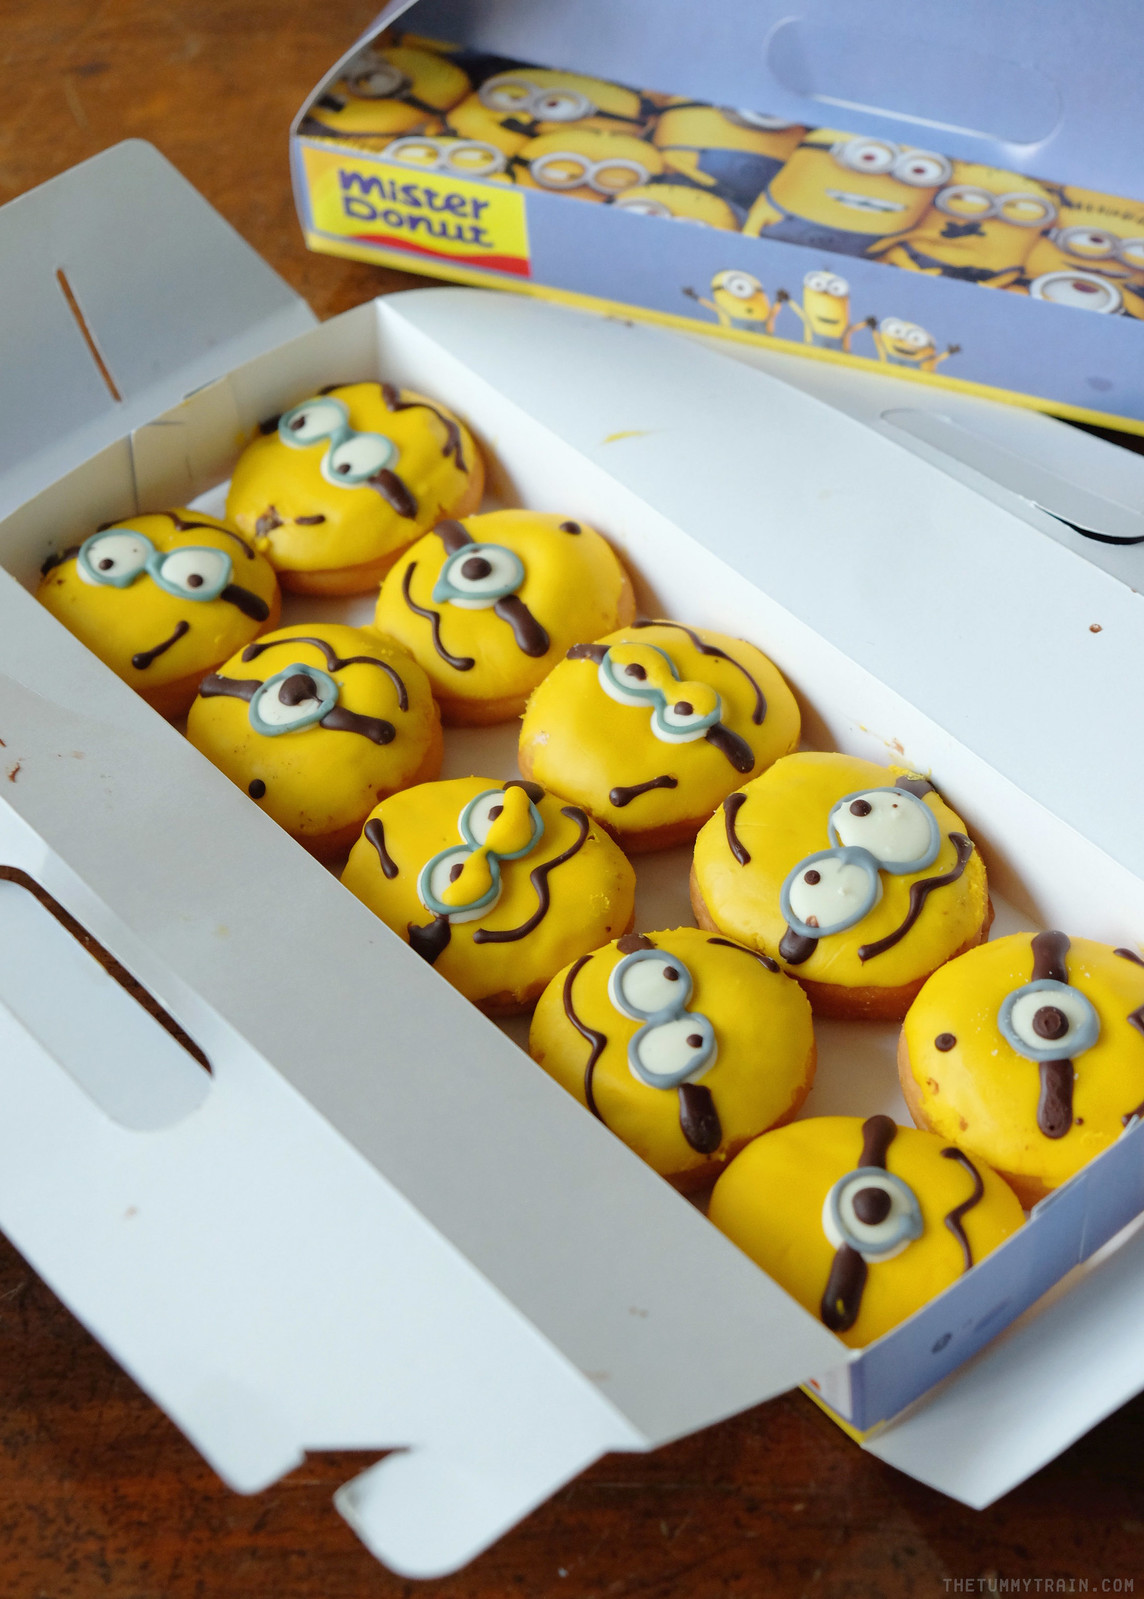 28640816506 82a03ca74d h - Minions invade Mister Donut + An Overload of Donuts Giveaway!